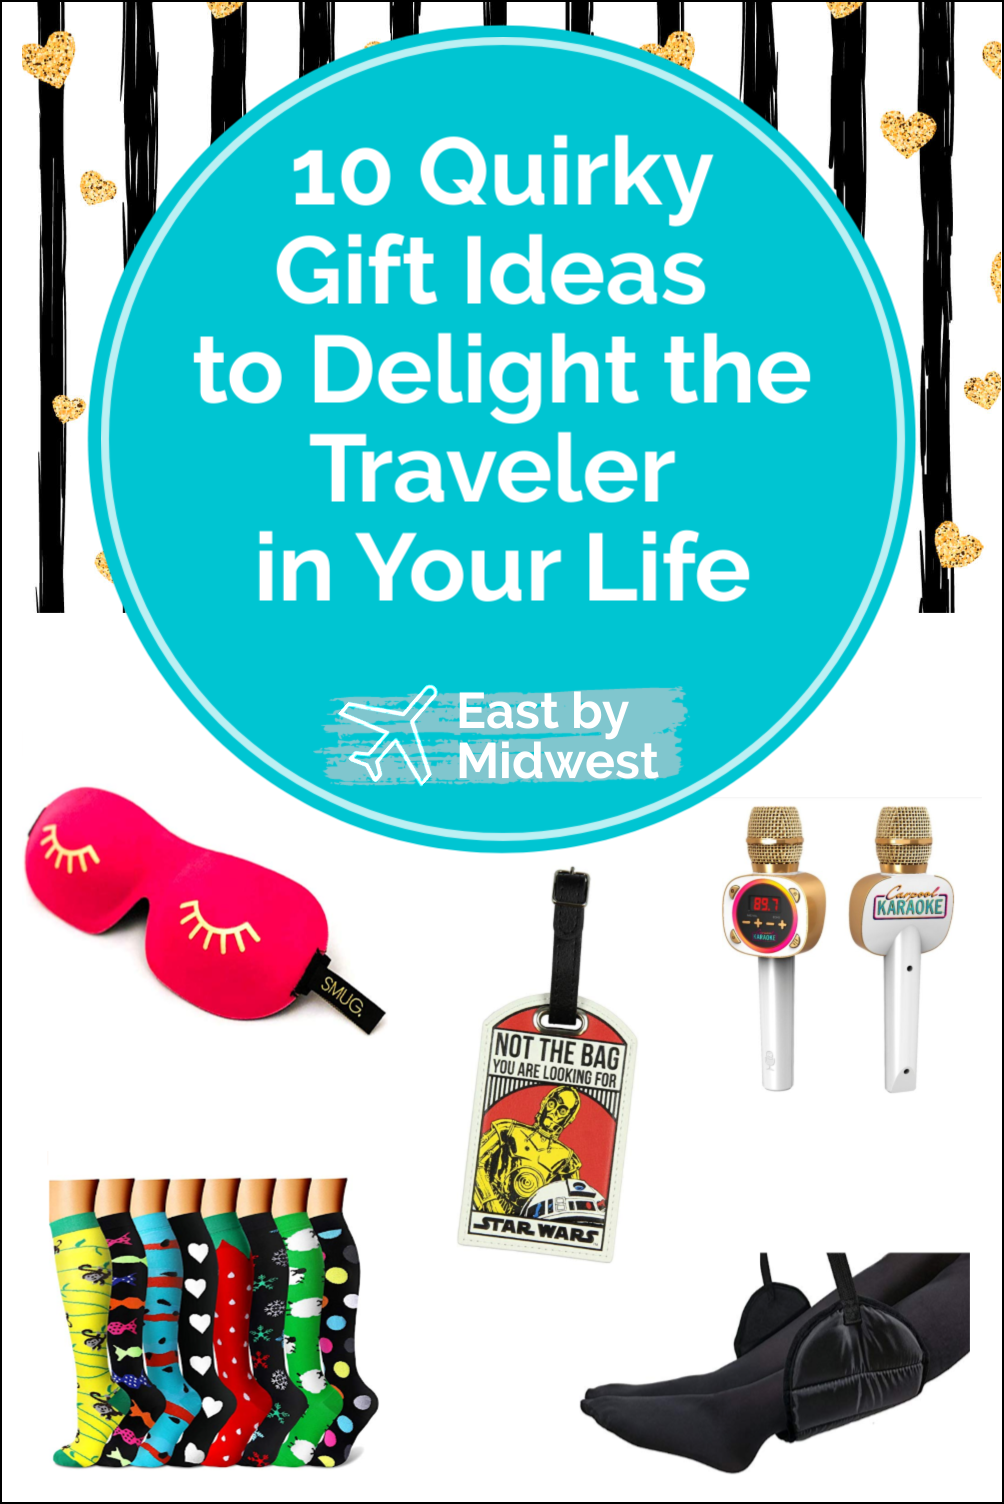 10 Quirky Gift Ideas to Delight the Traveler in Your Life